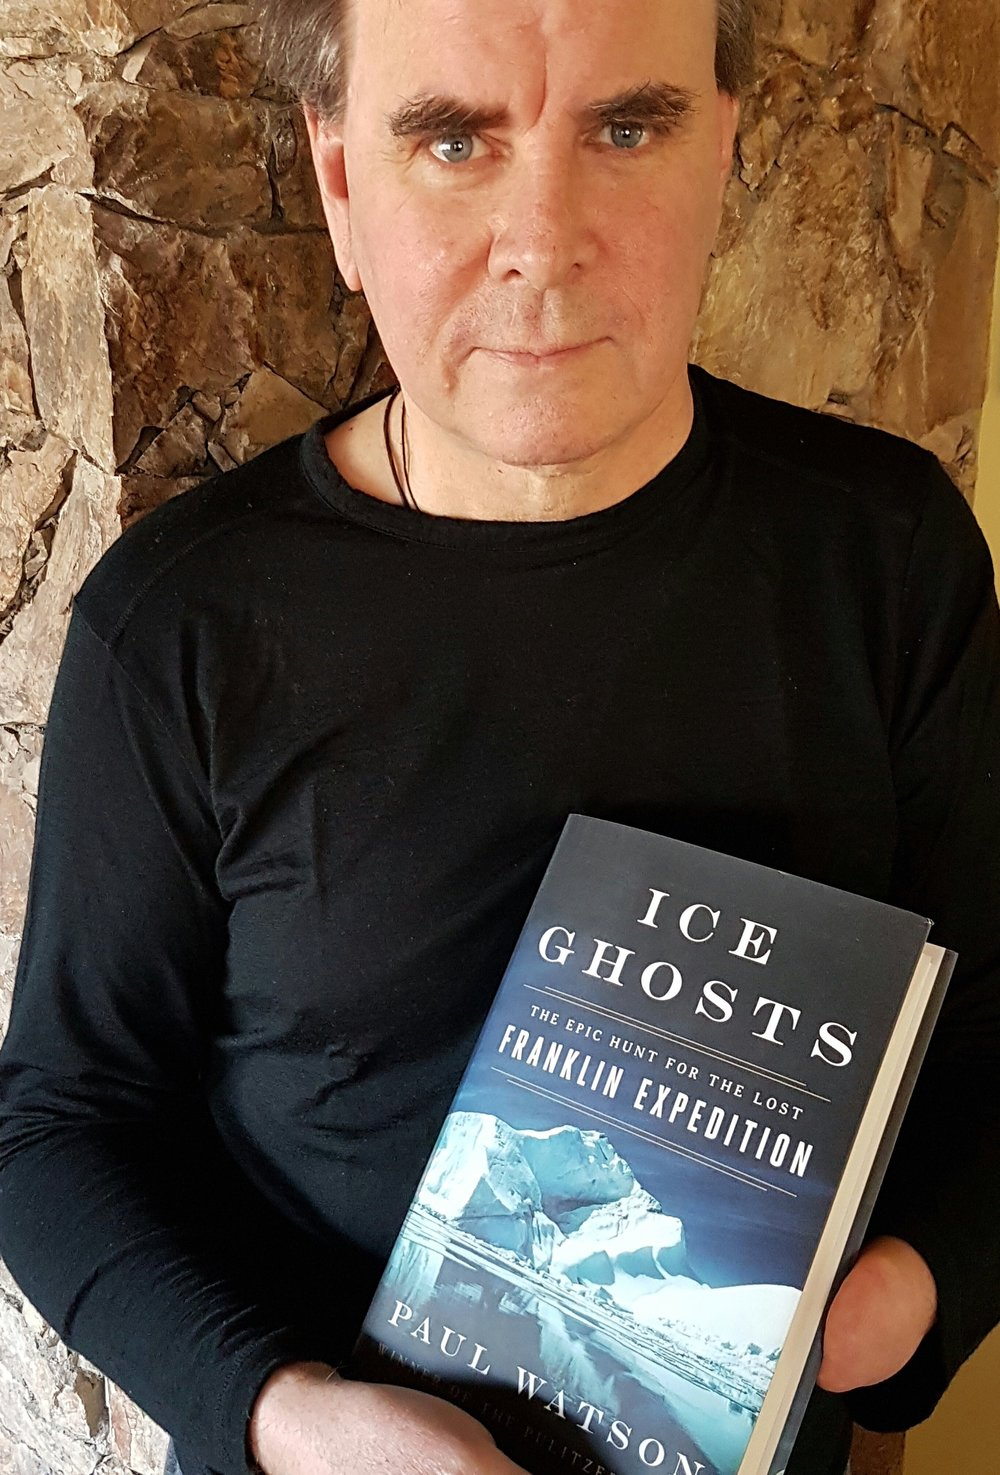 After almost two years of research, reporting and writing, Paul finally gets his hands on a copy of ICE GHOSTS: The Epic Hunt for the Lost Franklin Expedition